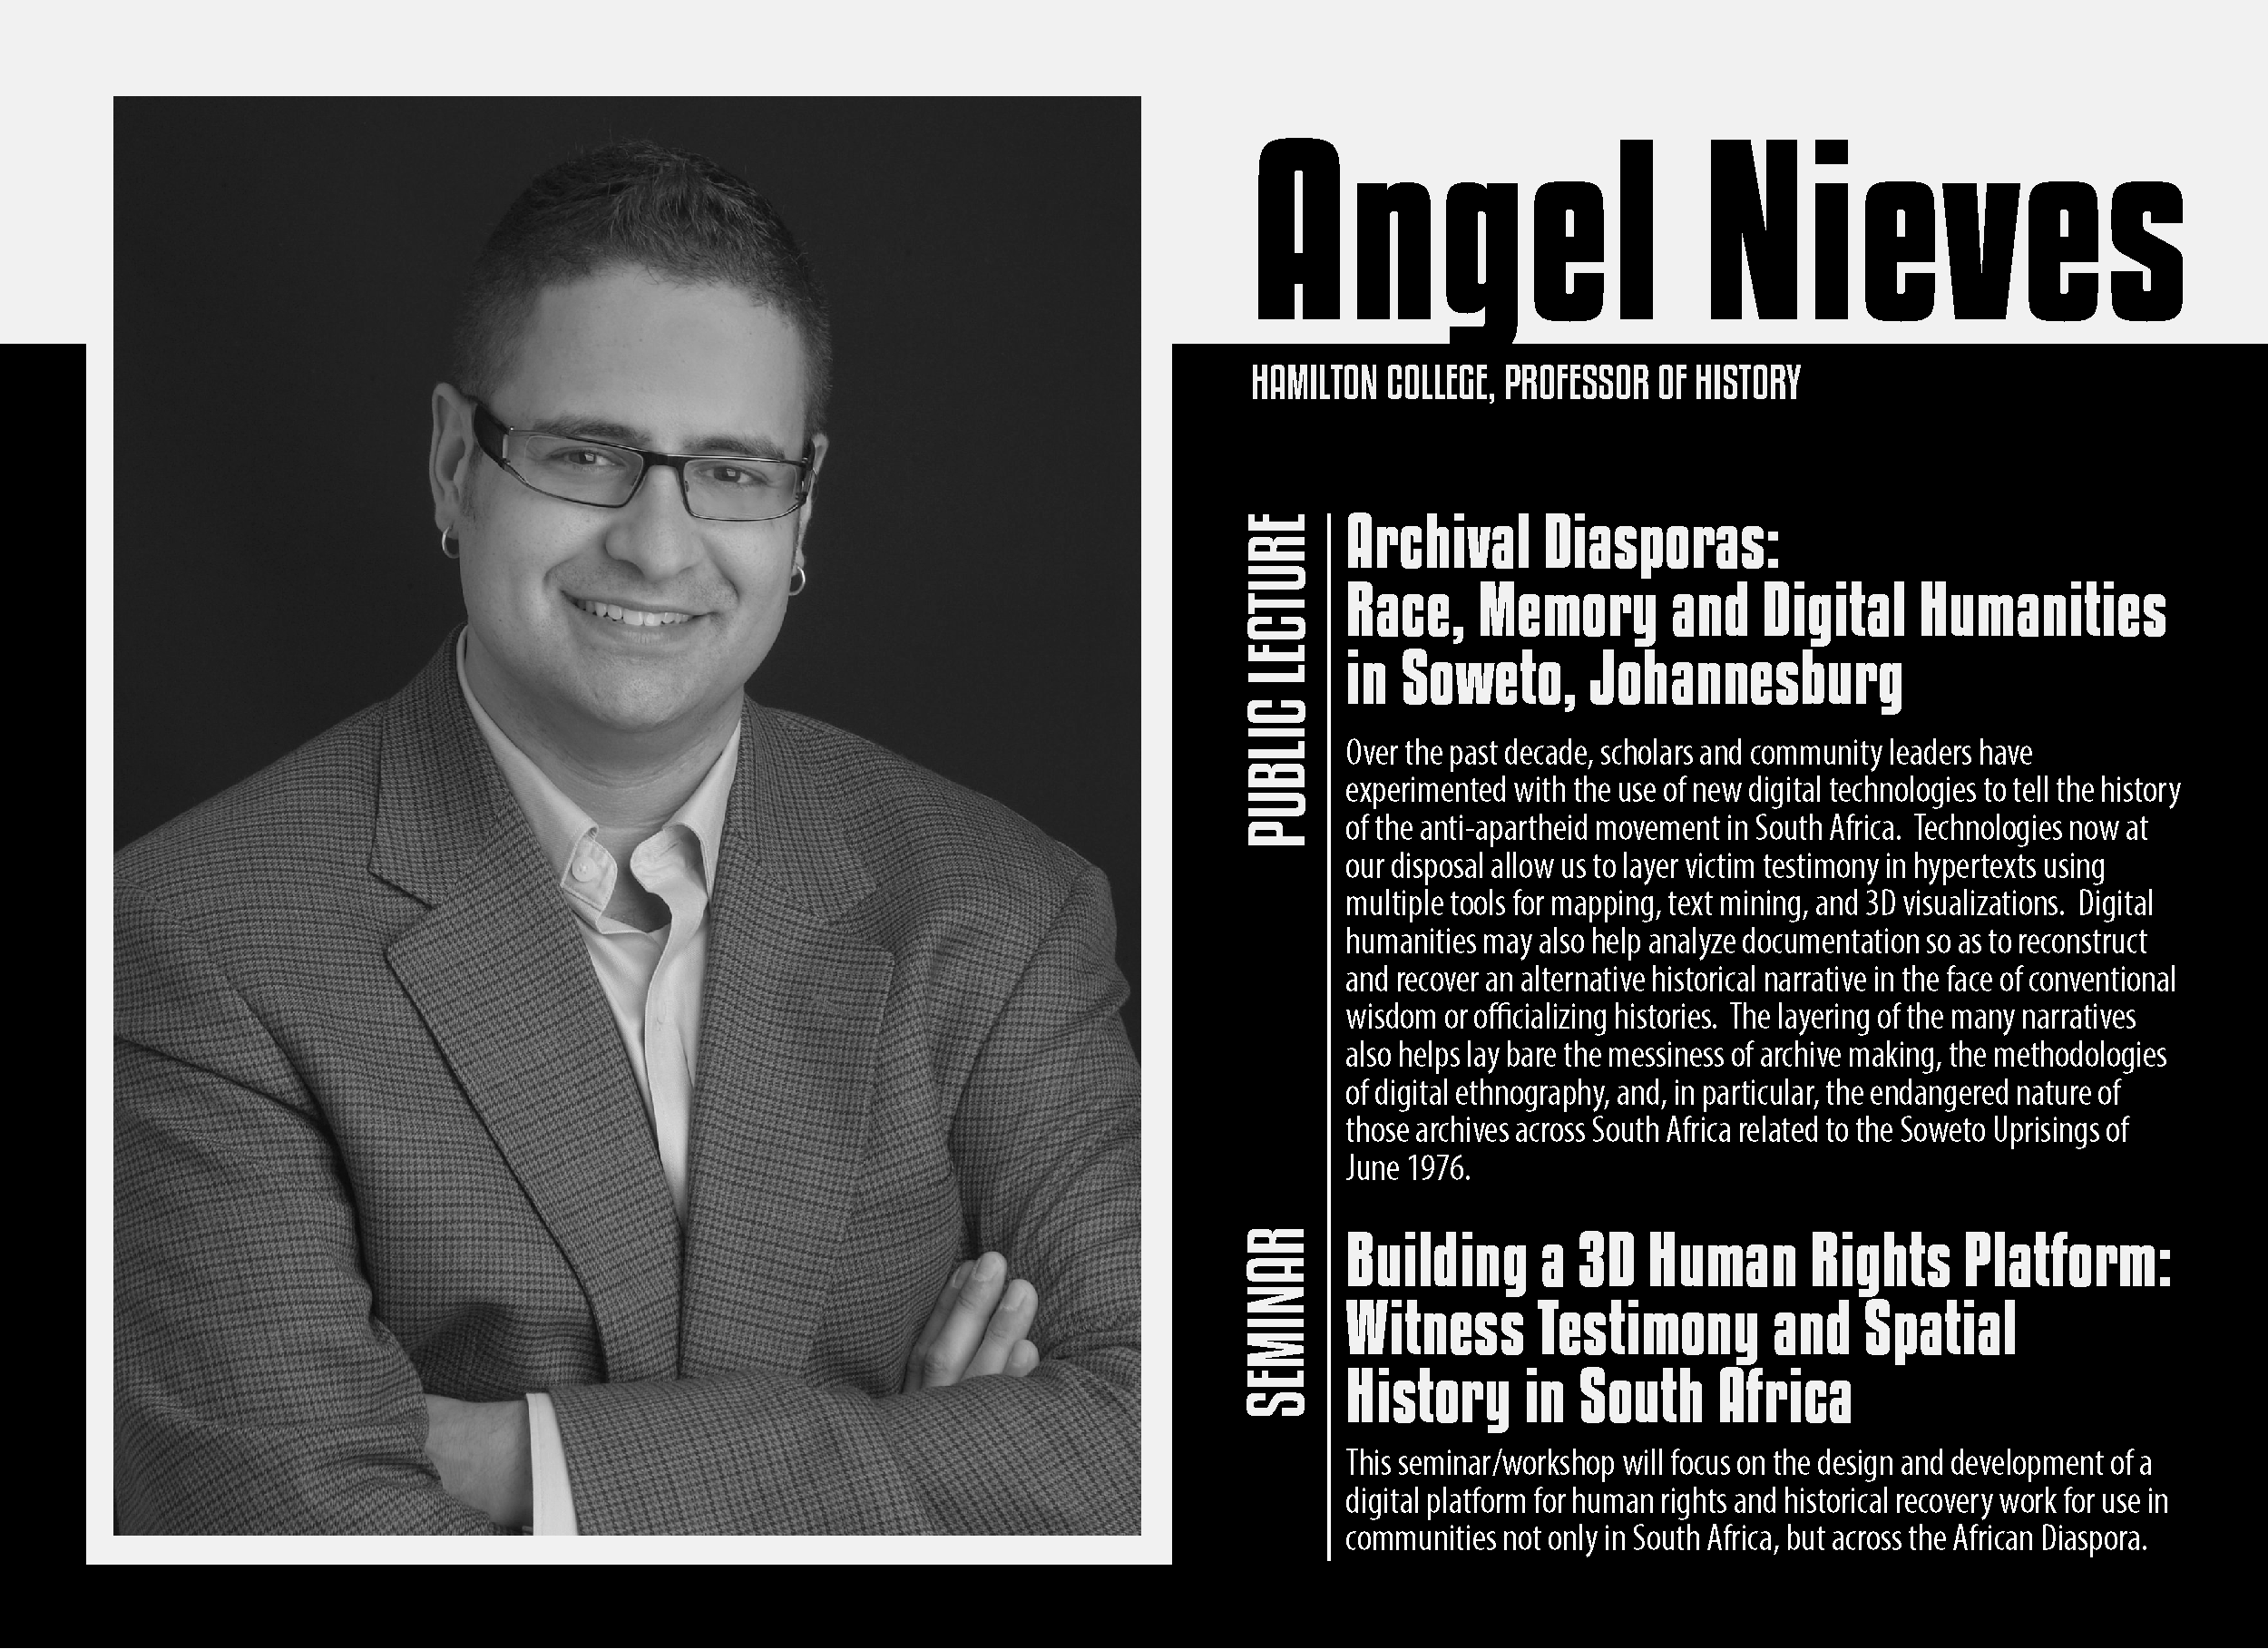 04.27.2016 Children of the Soil - Angel Nieves